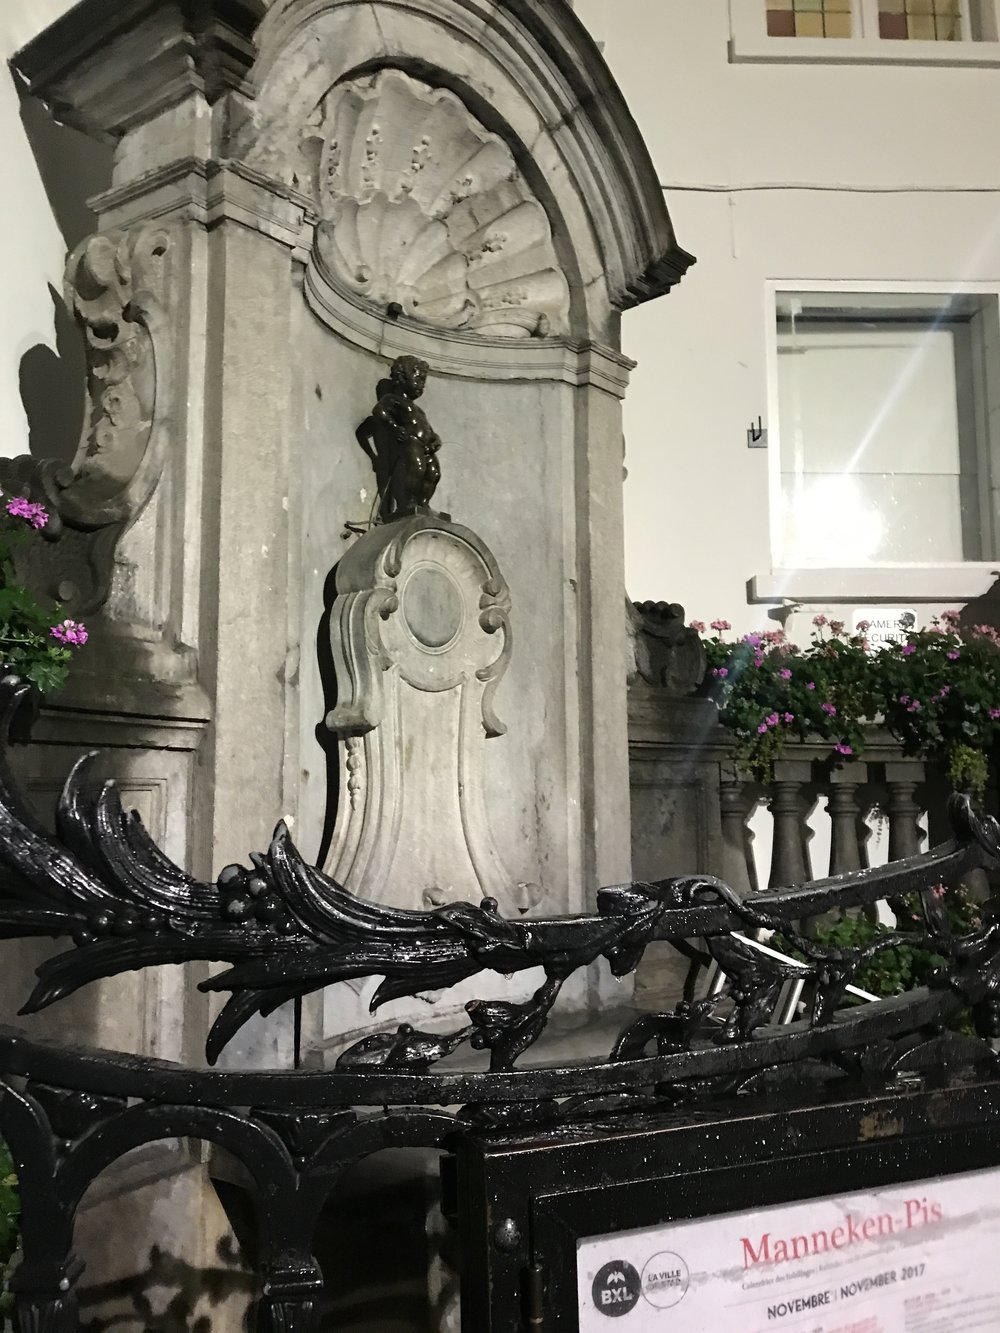 Manneken Pis in Brussels, BE